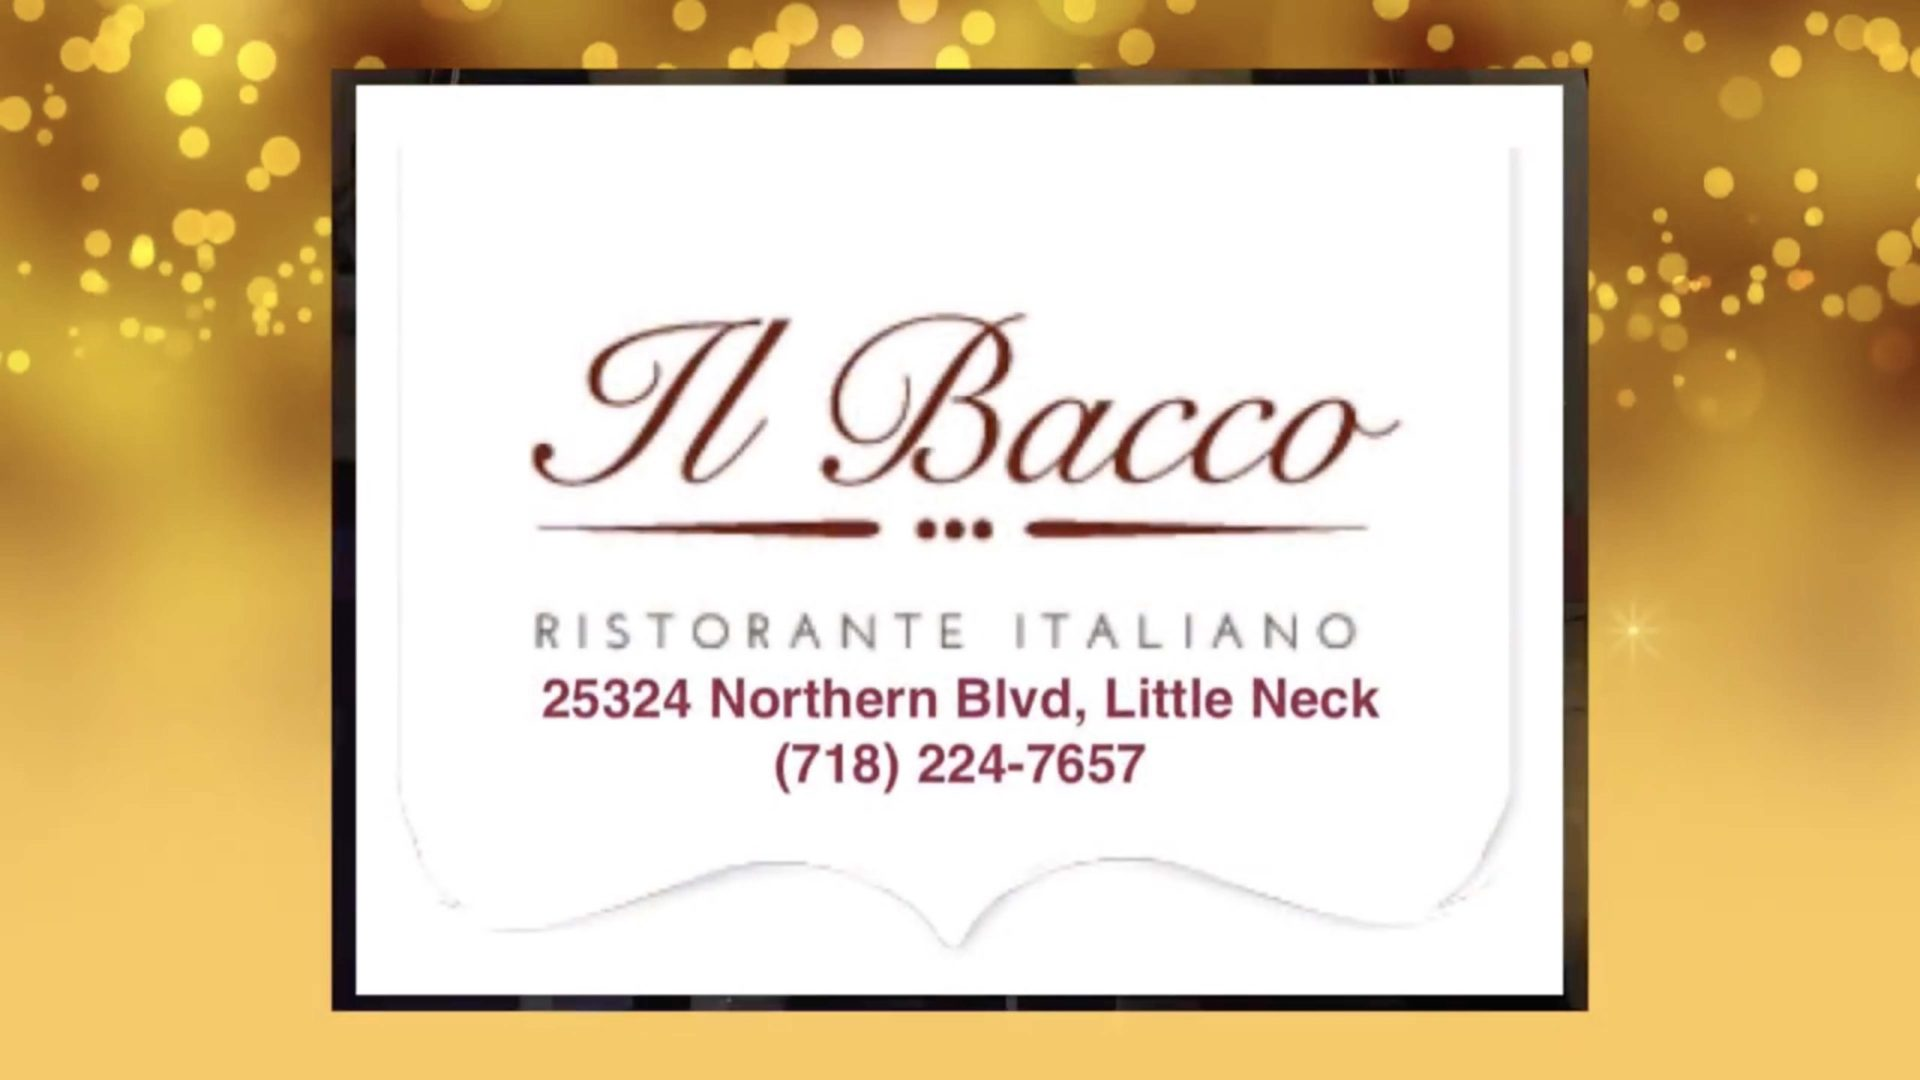 Happy Holidays from Il Bacco's Joe & Tina